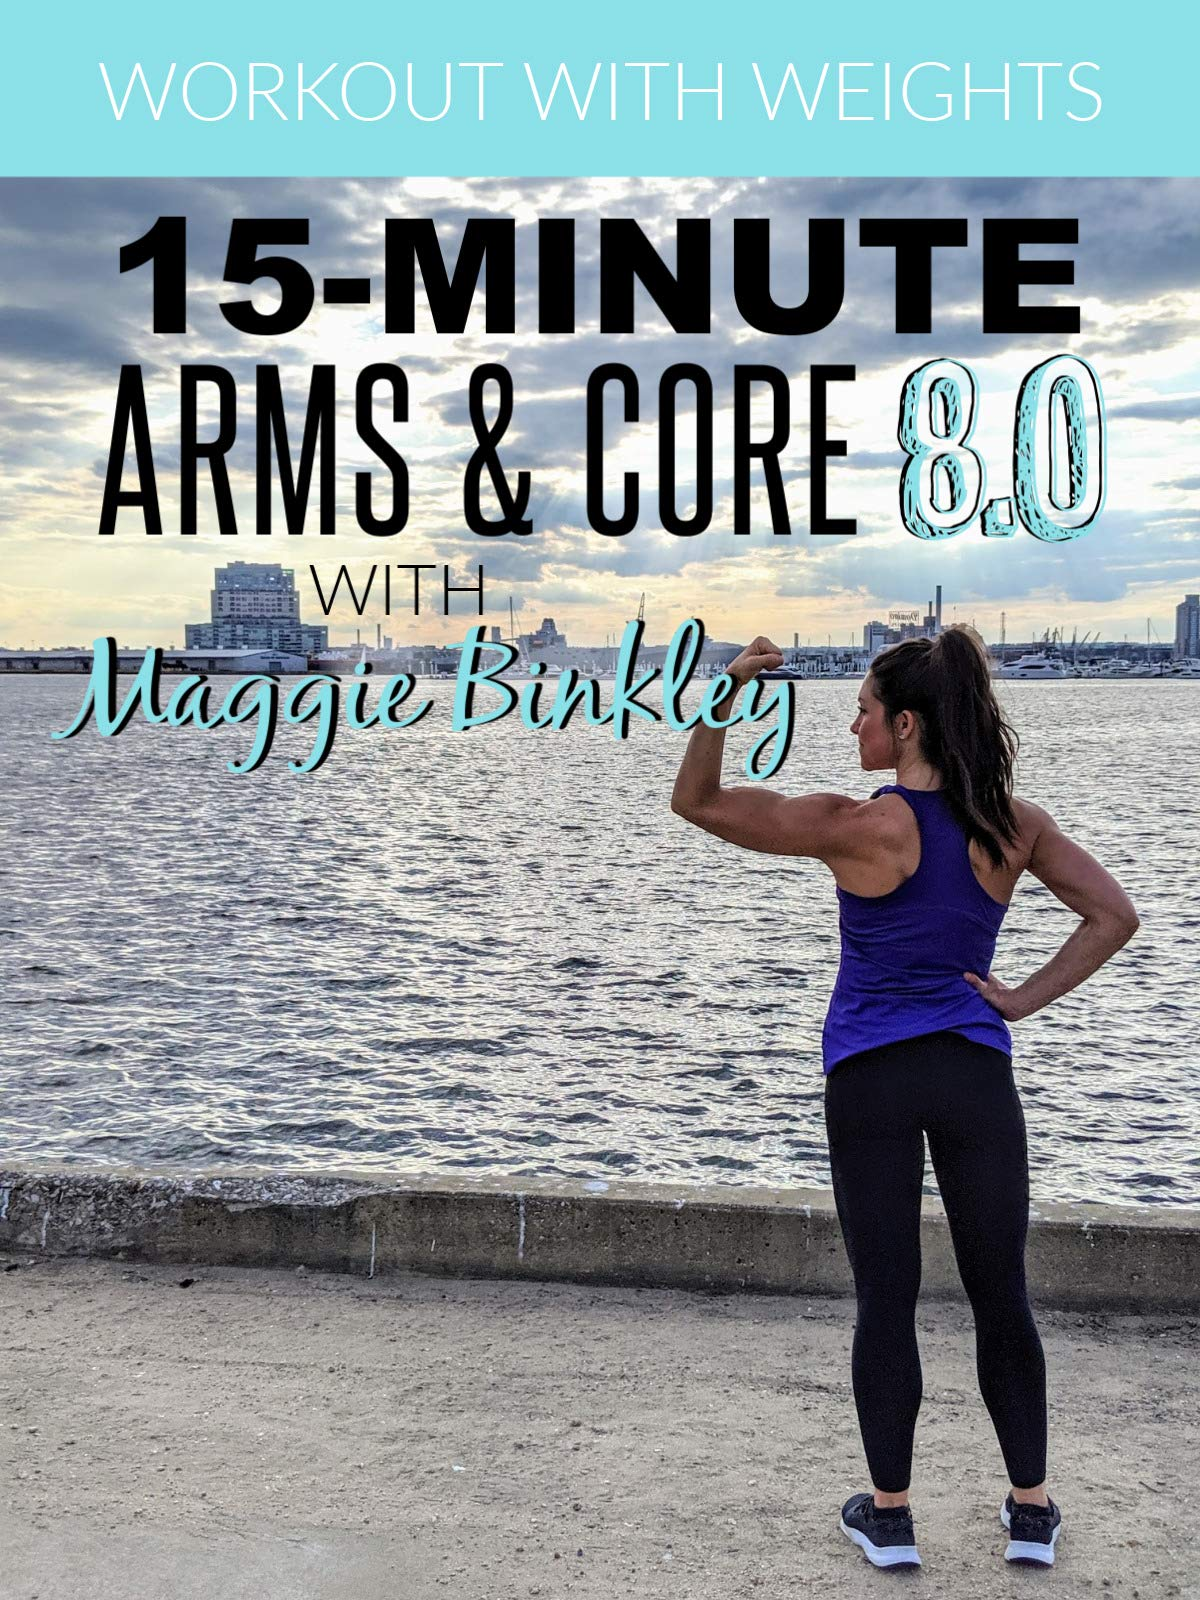 15-Minute Arms & Core 8.0 Workout (with weights) on Amazon Prime Video UK